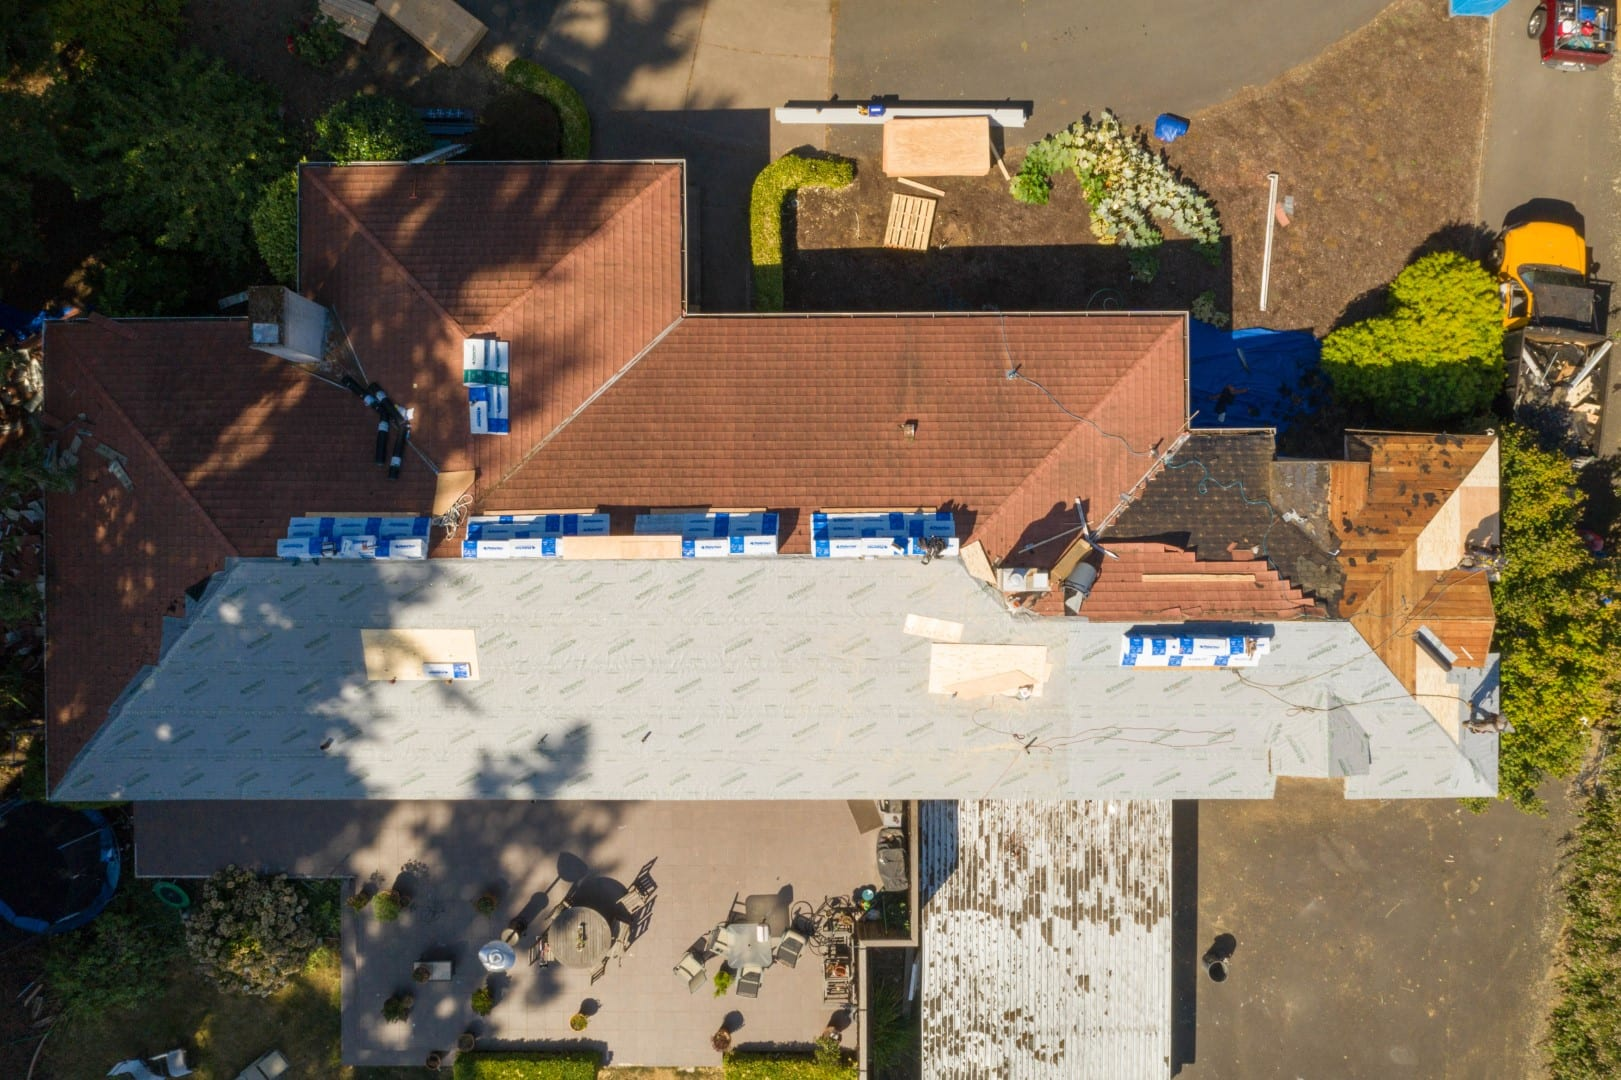 KVN Construction roofing project before picture from above in Portland